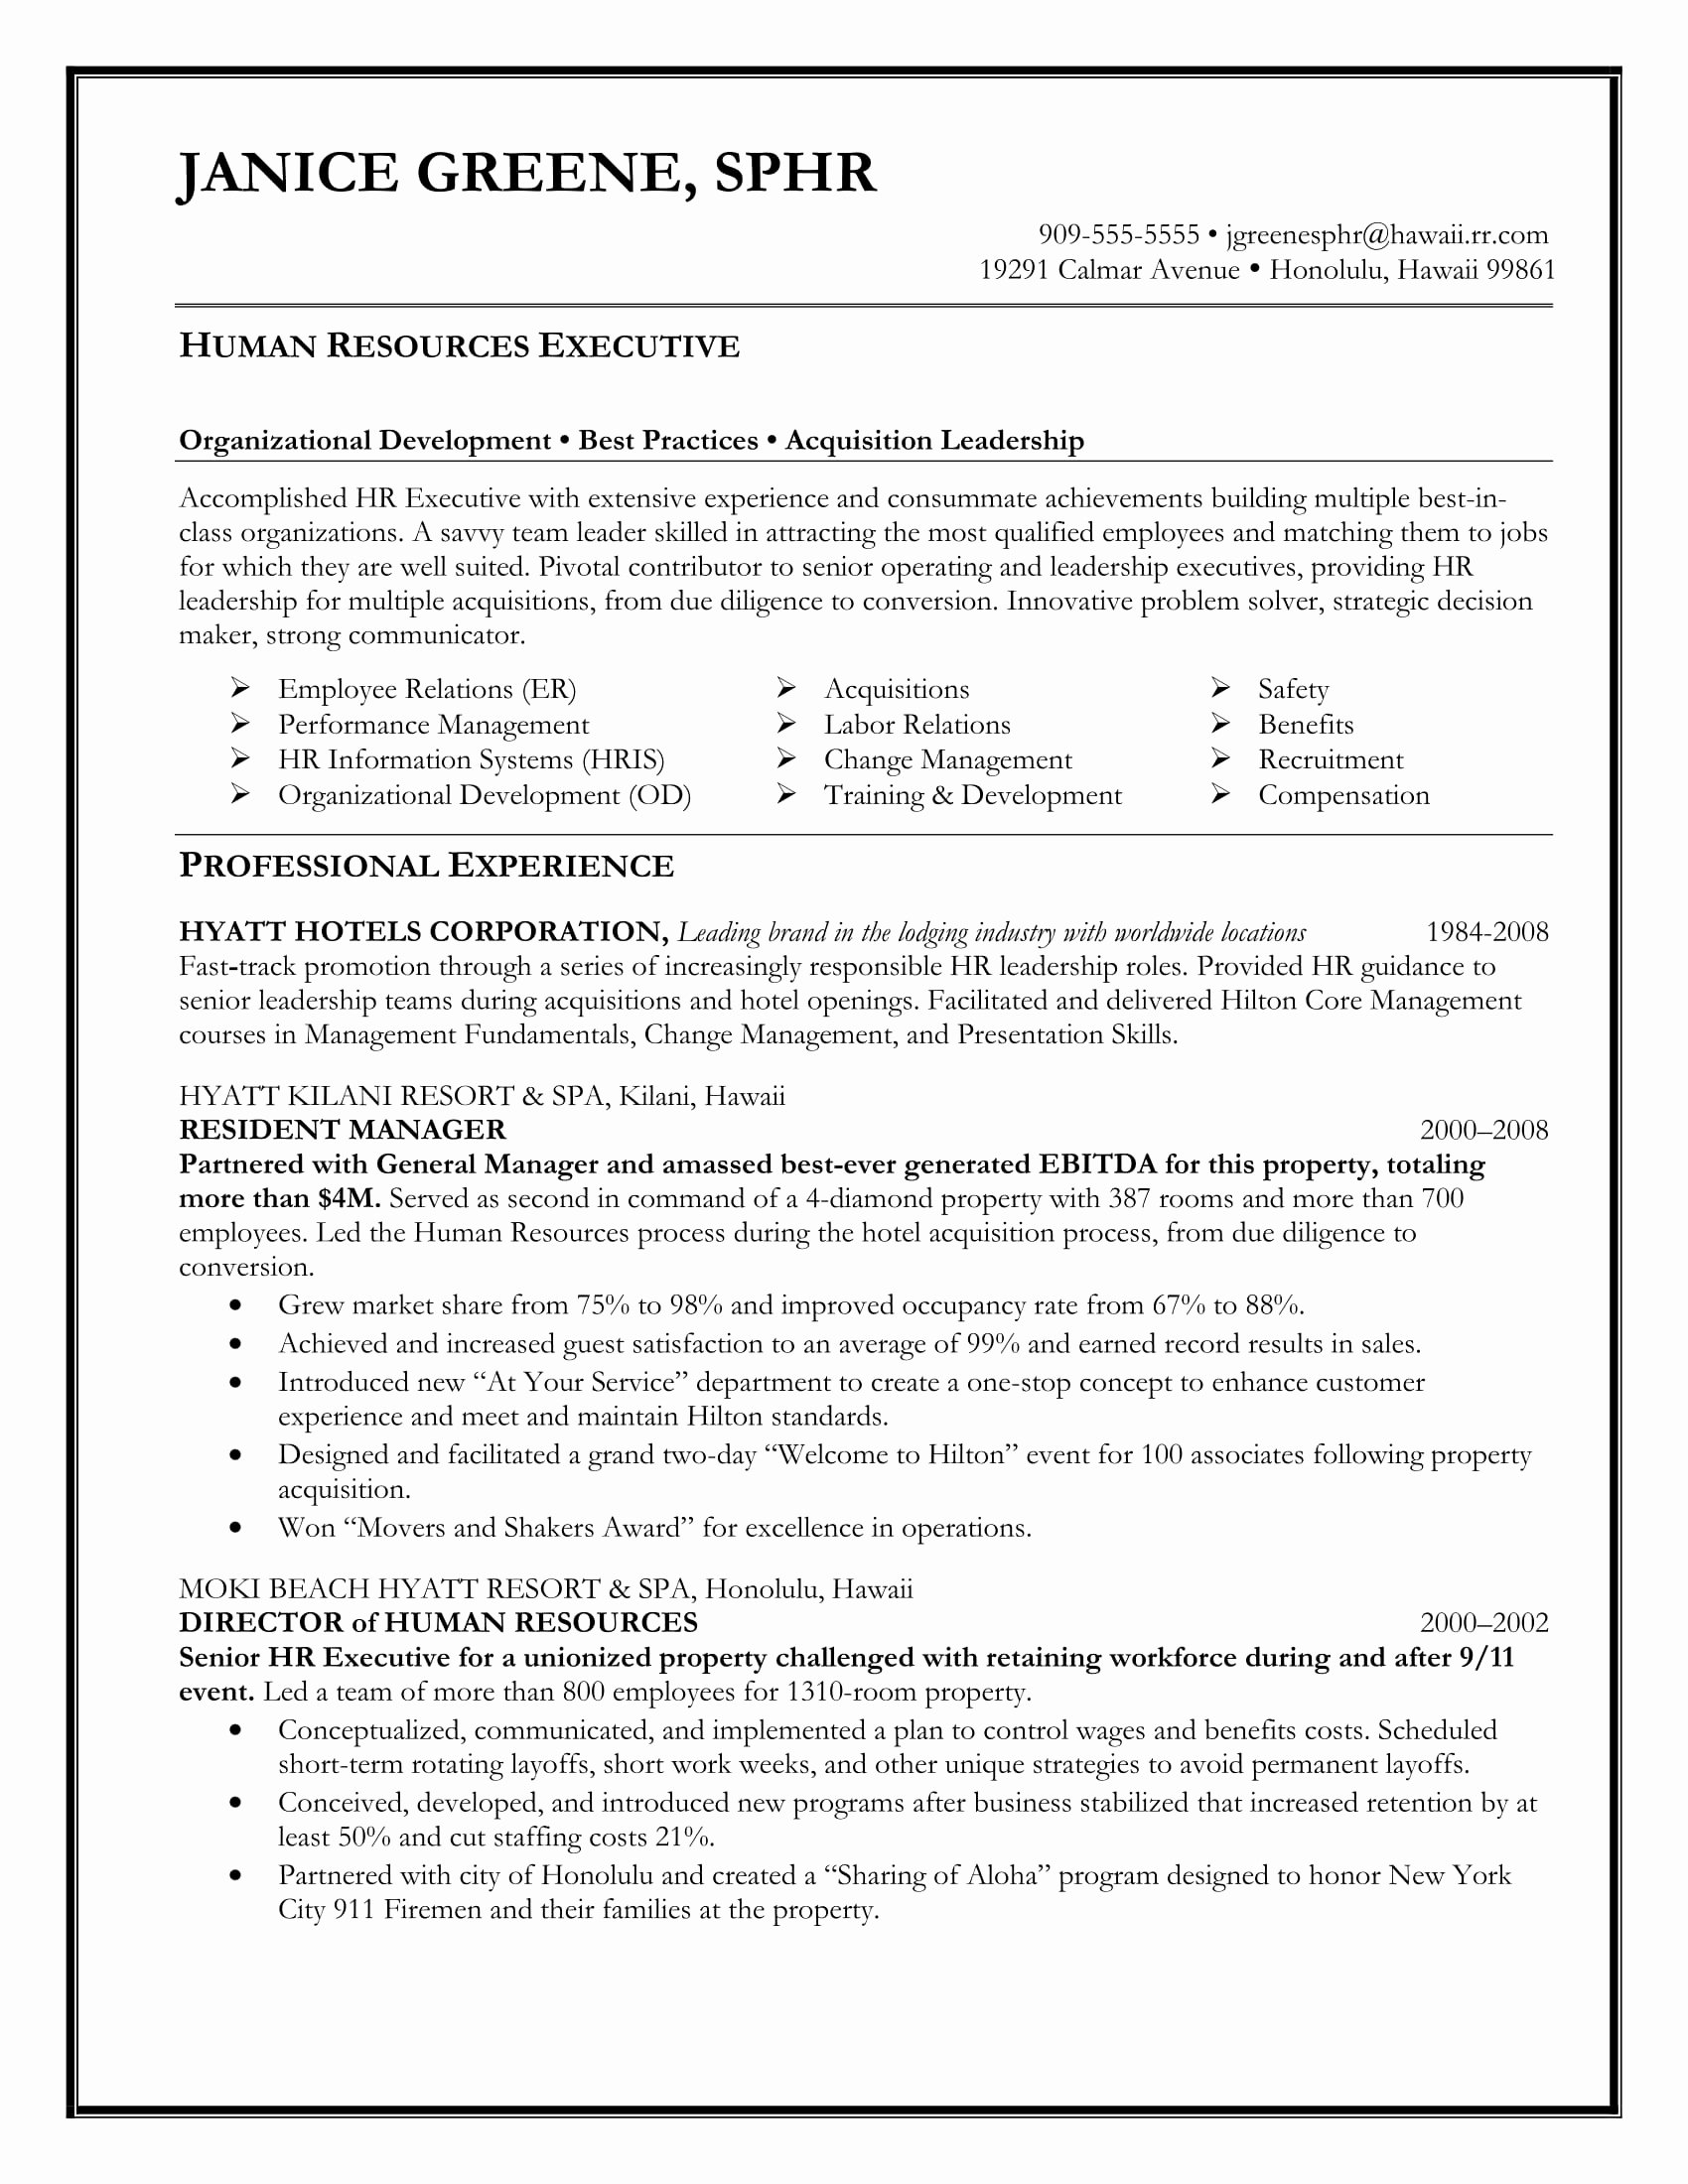 30 Luxury Image Free Resume Templates Microsoft Word